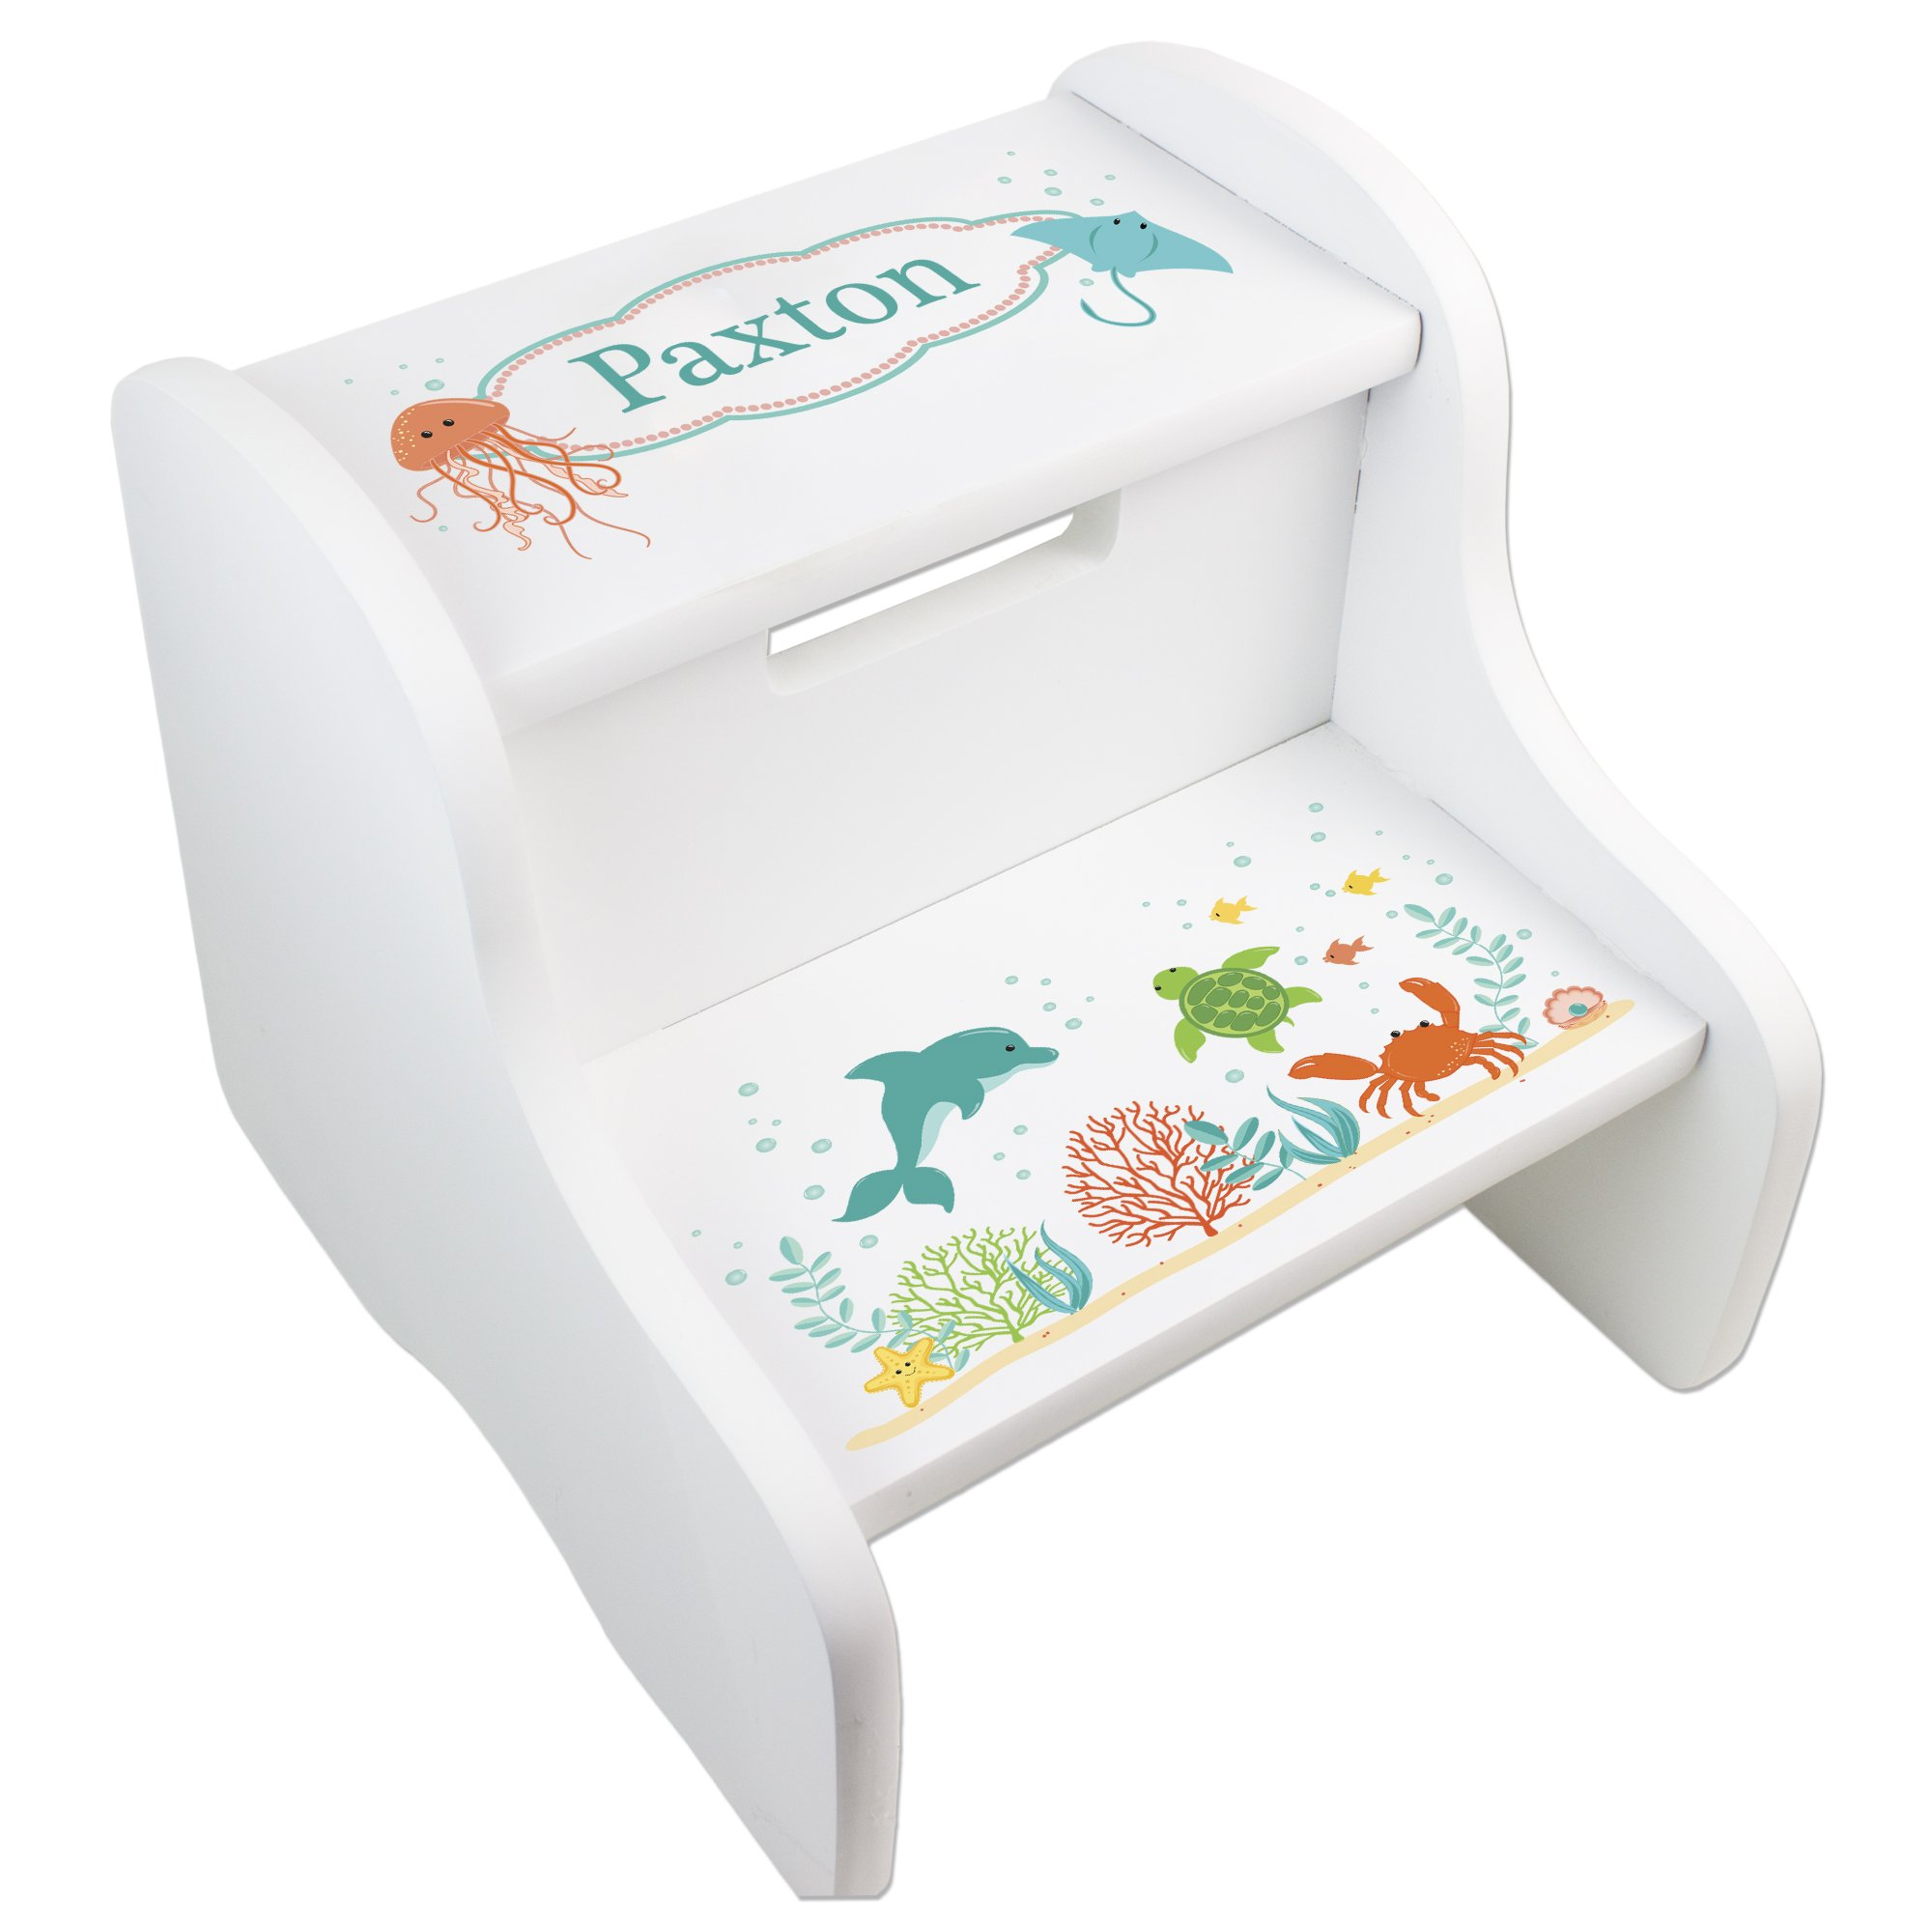 Personalized Natural Sealife Step Stool by MyBambino